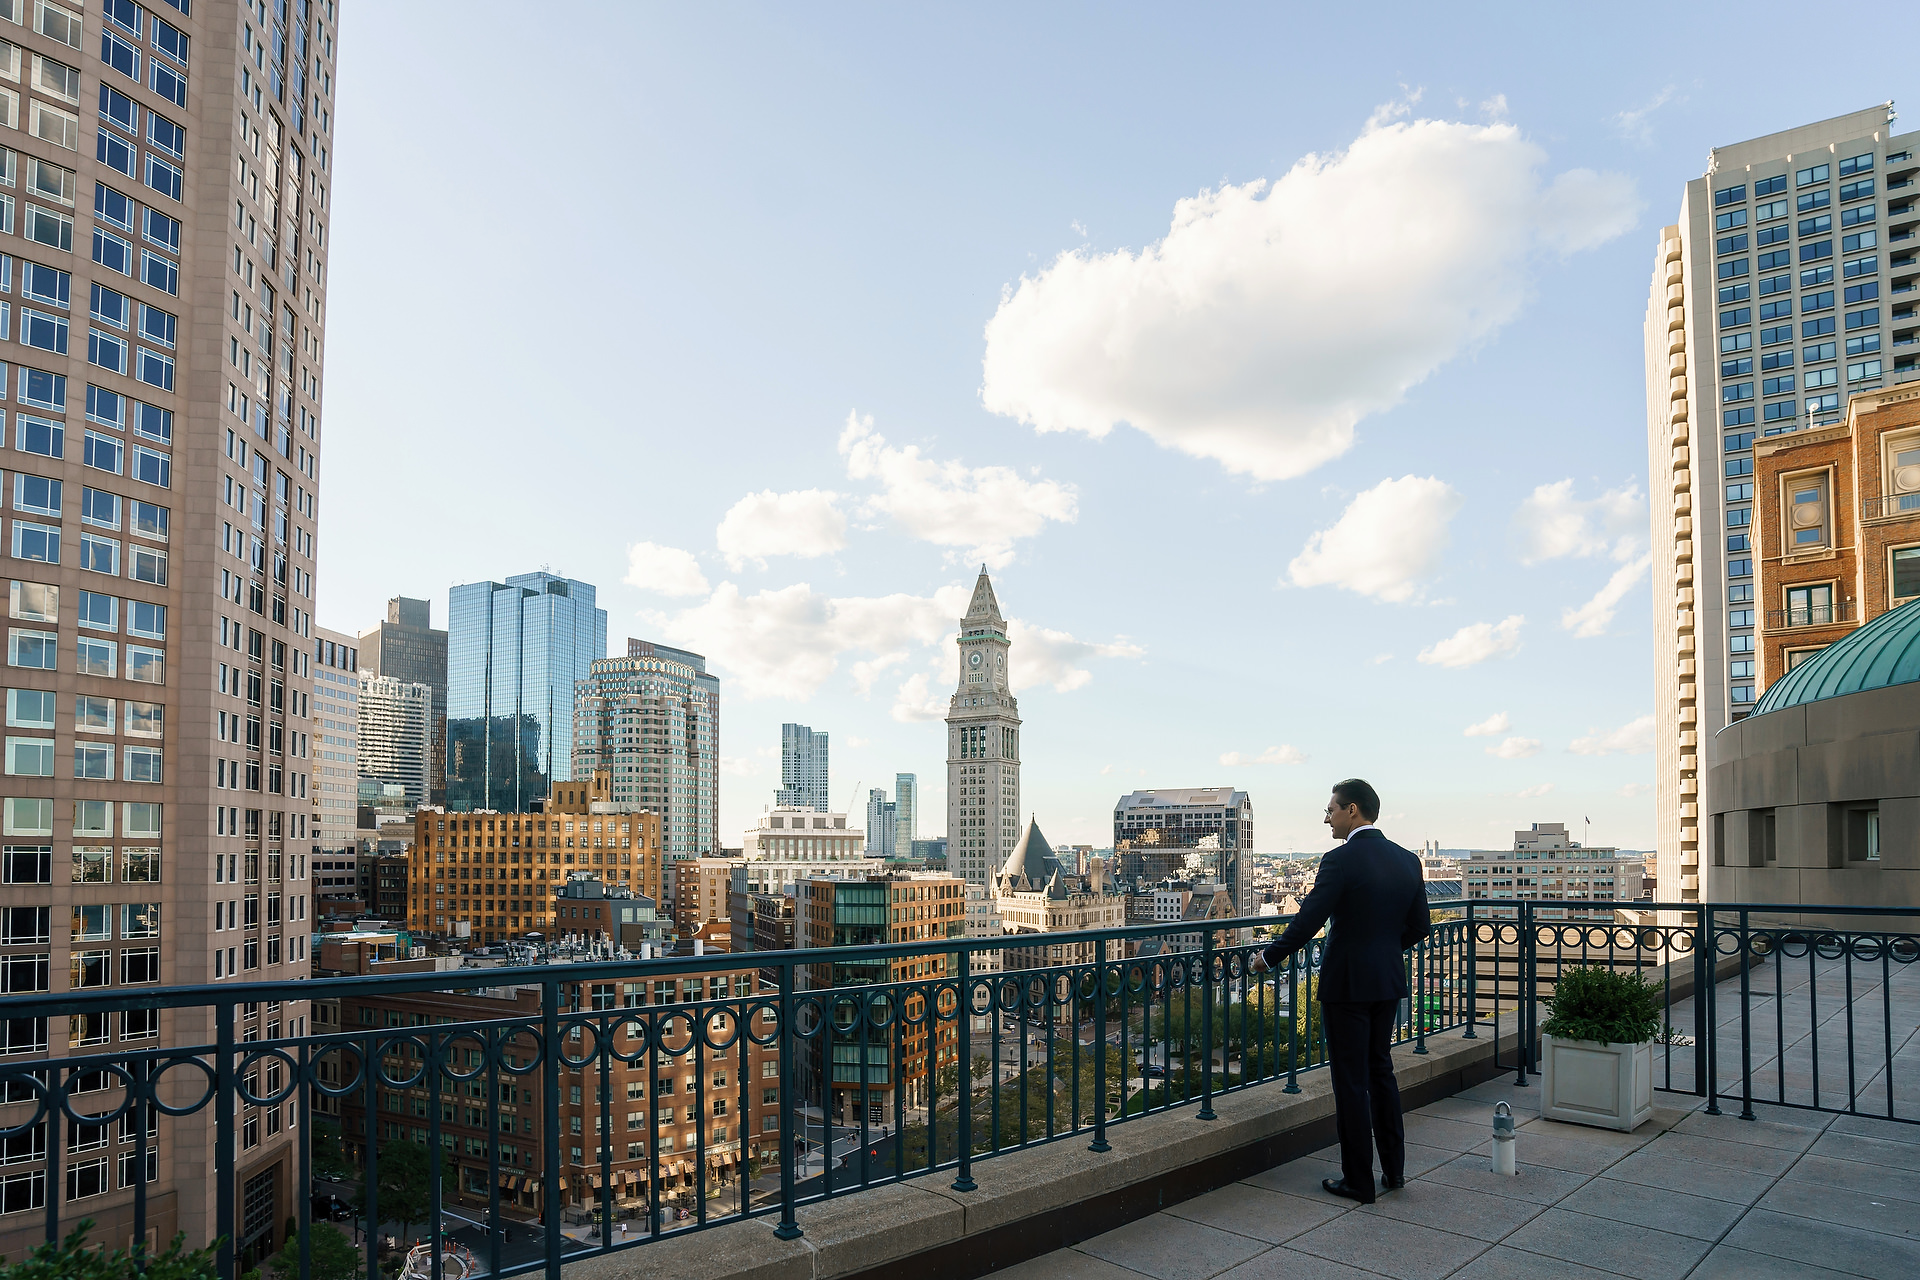 Boston Harbor Hotel Wedding Images | The groom waits for his bride on the balcony